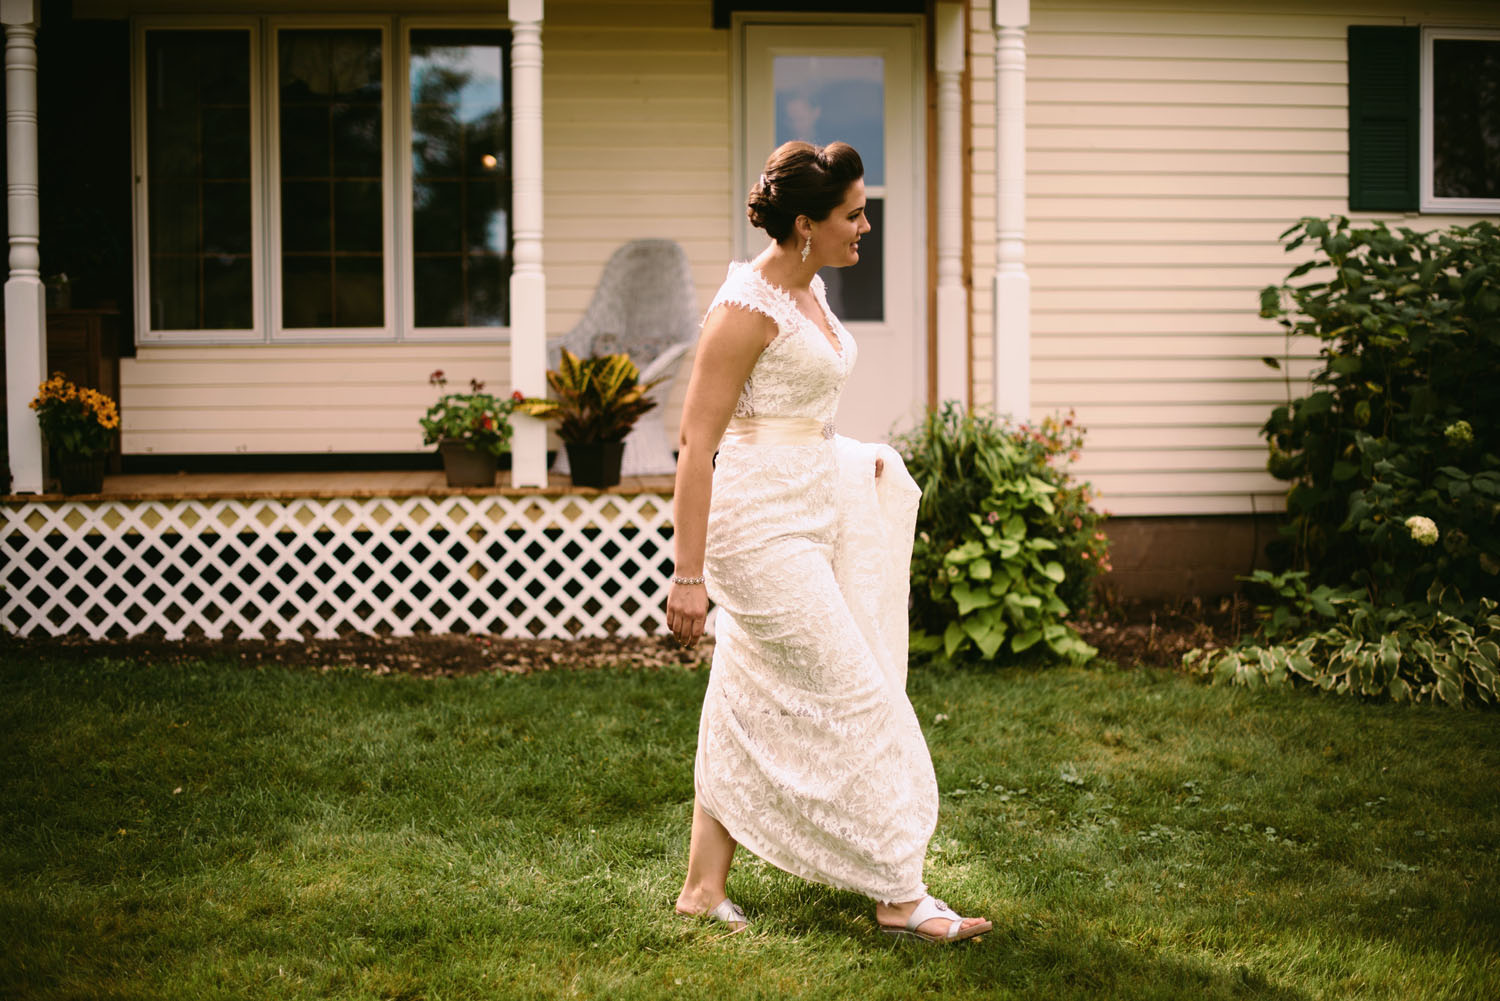 backyard-wedding-first-look-wisconsin.jpg